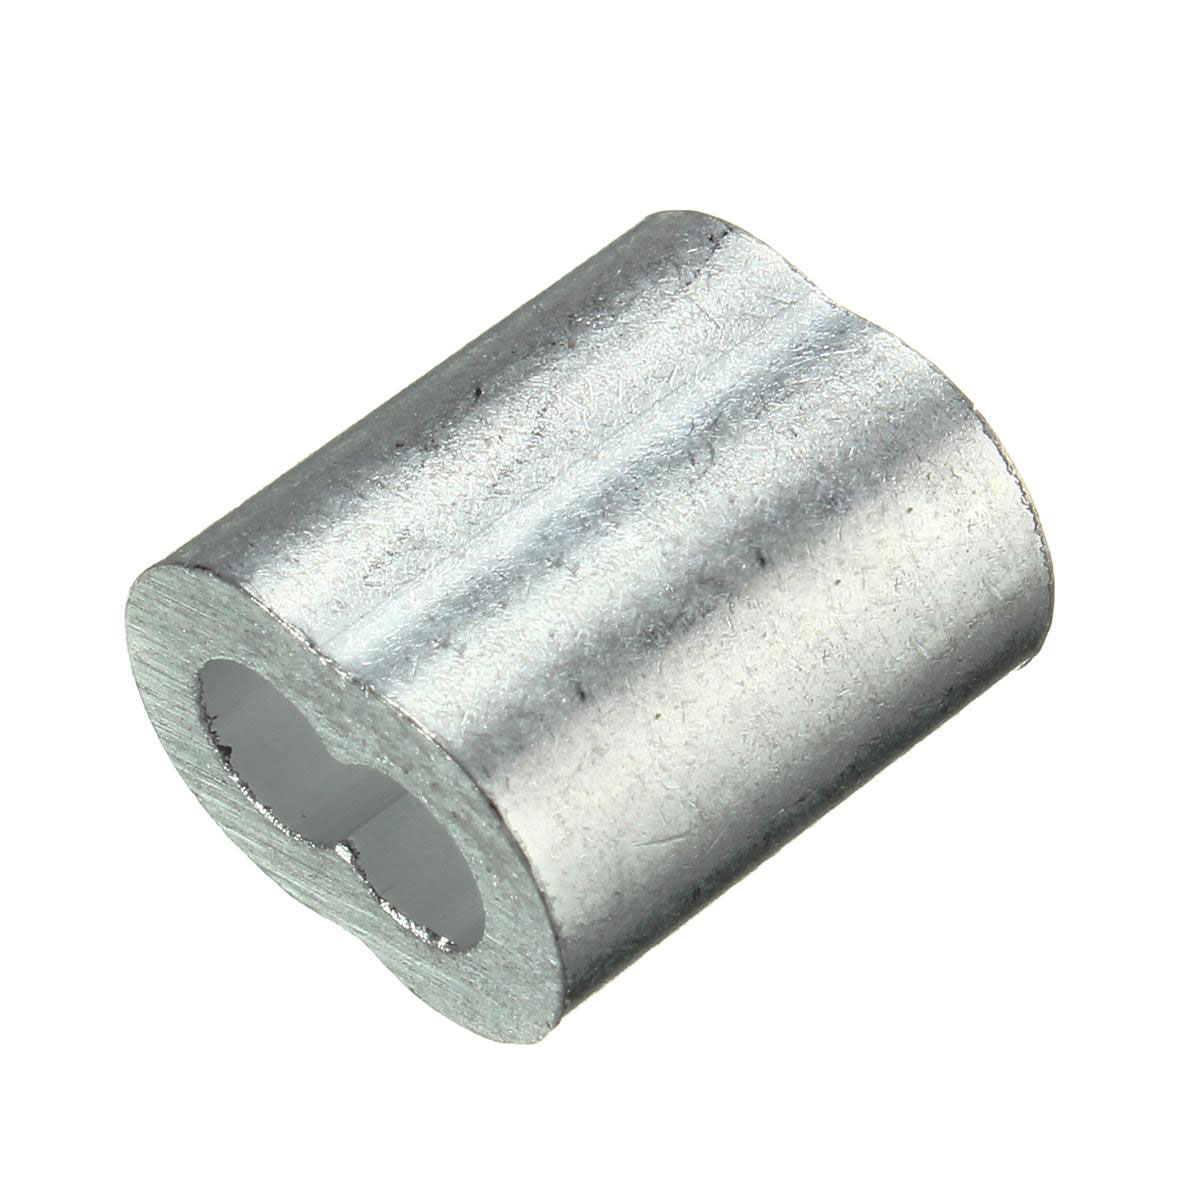 """20 Pack 3mm Thimbles Ferrules For 1//8/"""" 3.2mm Stainless Steel Wire Rope"""